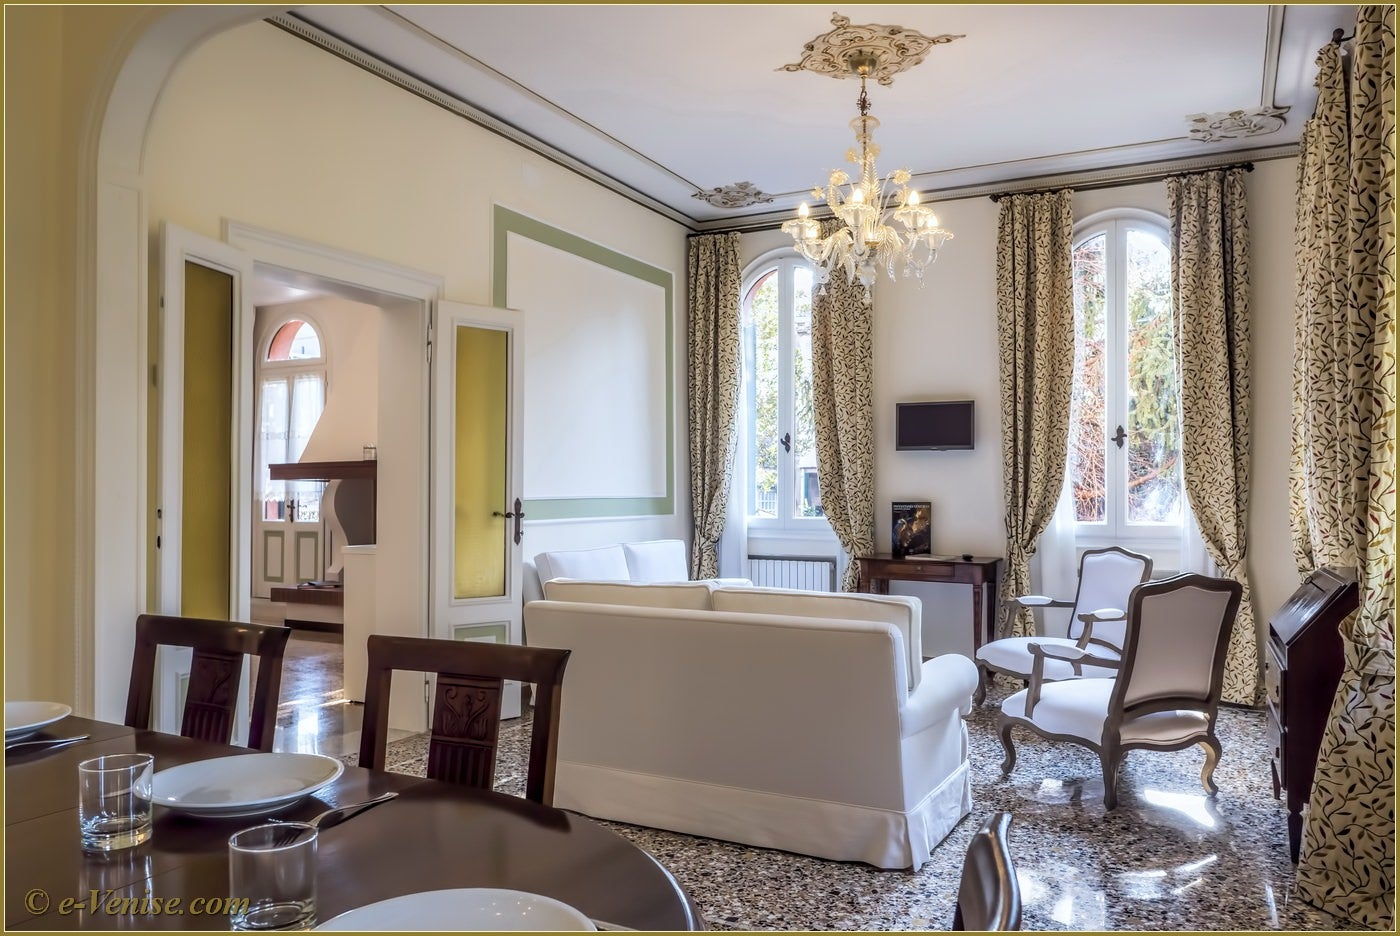 Location appartement venise castello barbaria terrace 5 for Salle a manger 10m2